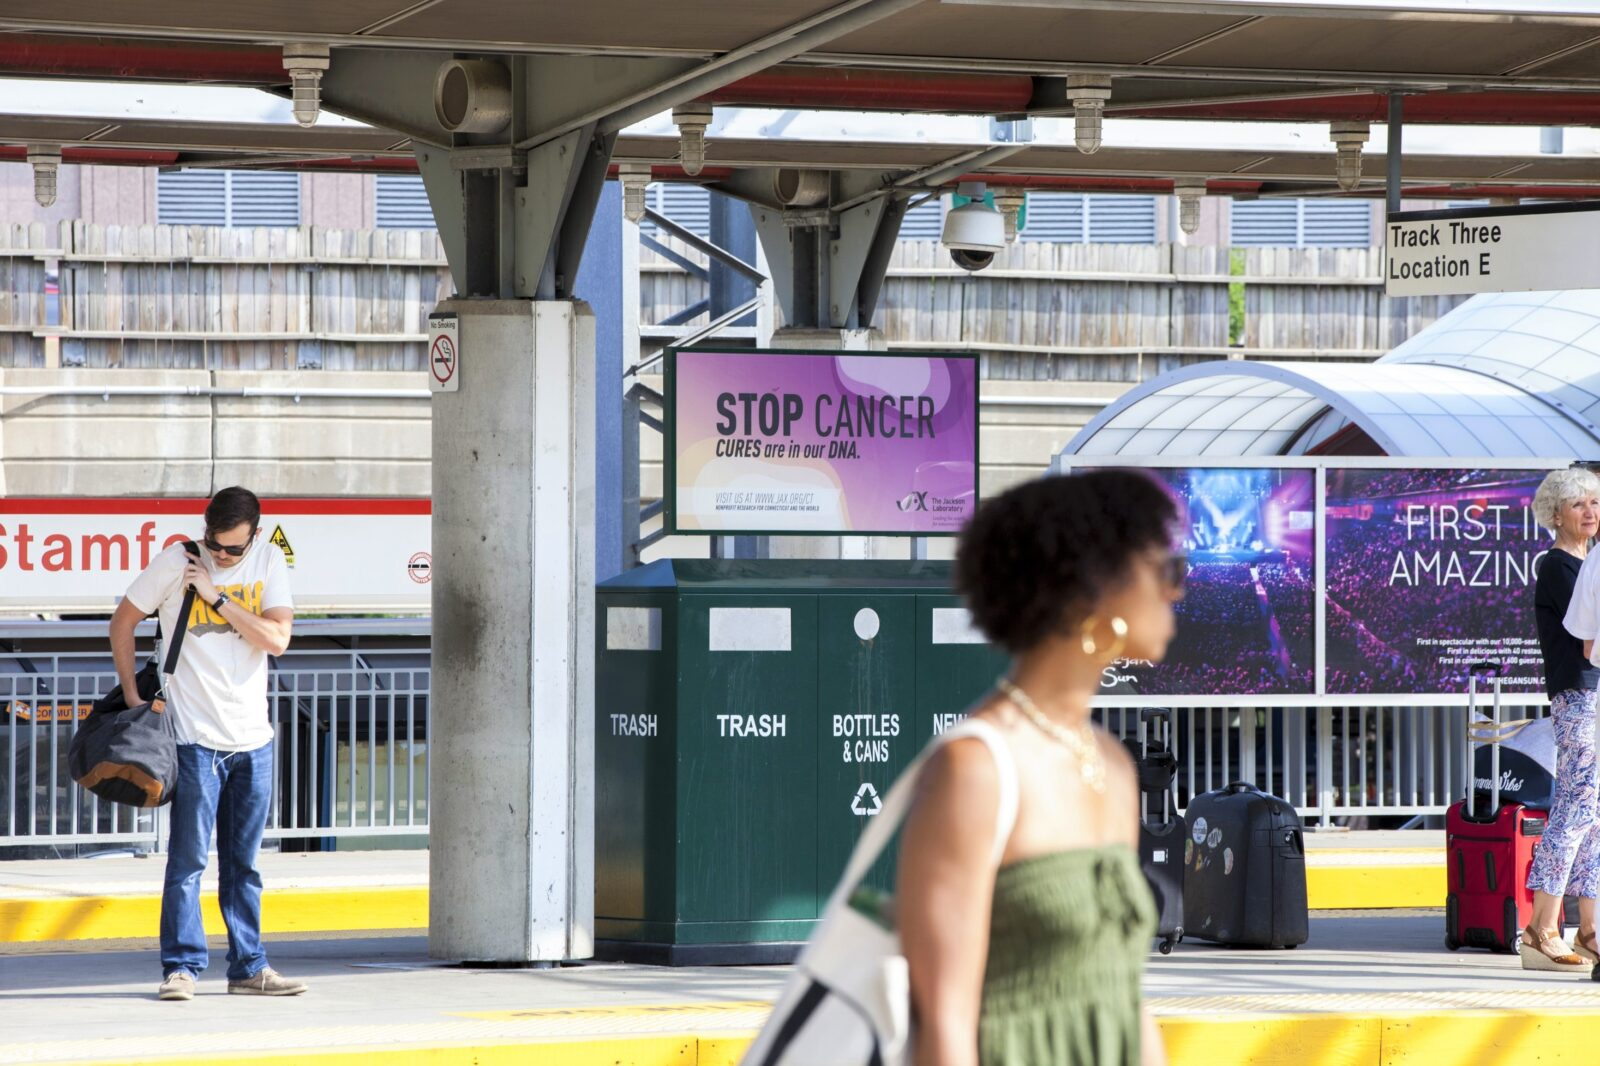 The Jackson Laboratory Stop Cancer Rail Platform Advertising